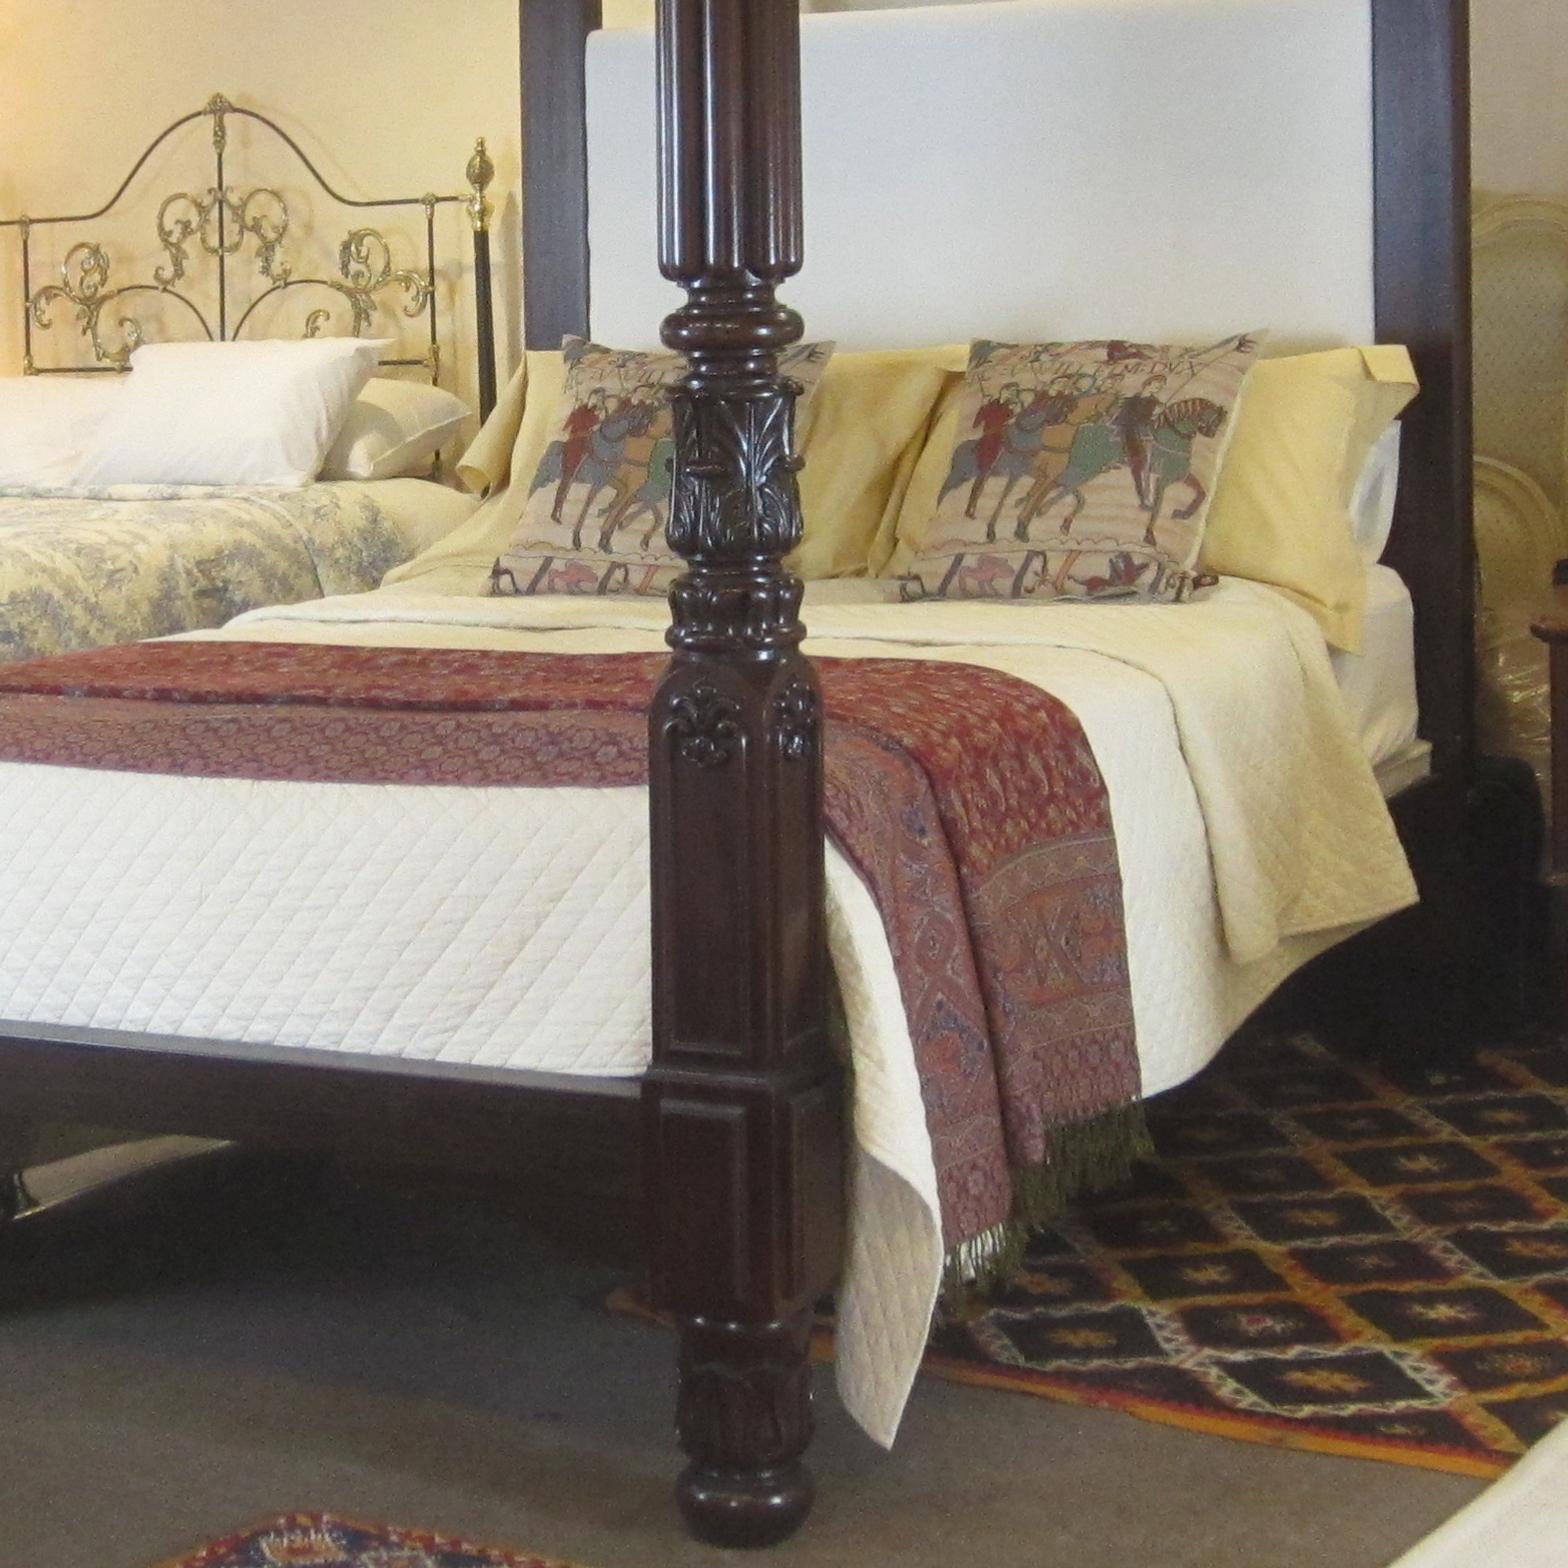 Mahogany Four-Poster Bed from seventh-heaven on RubyLUX